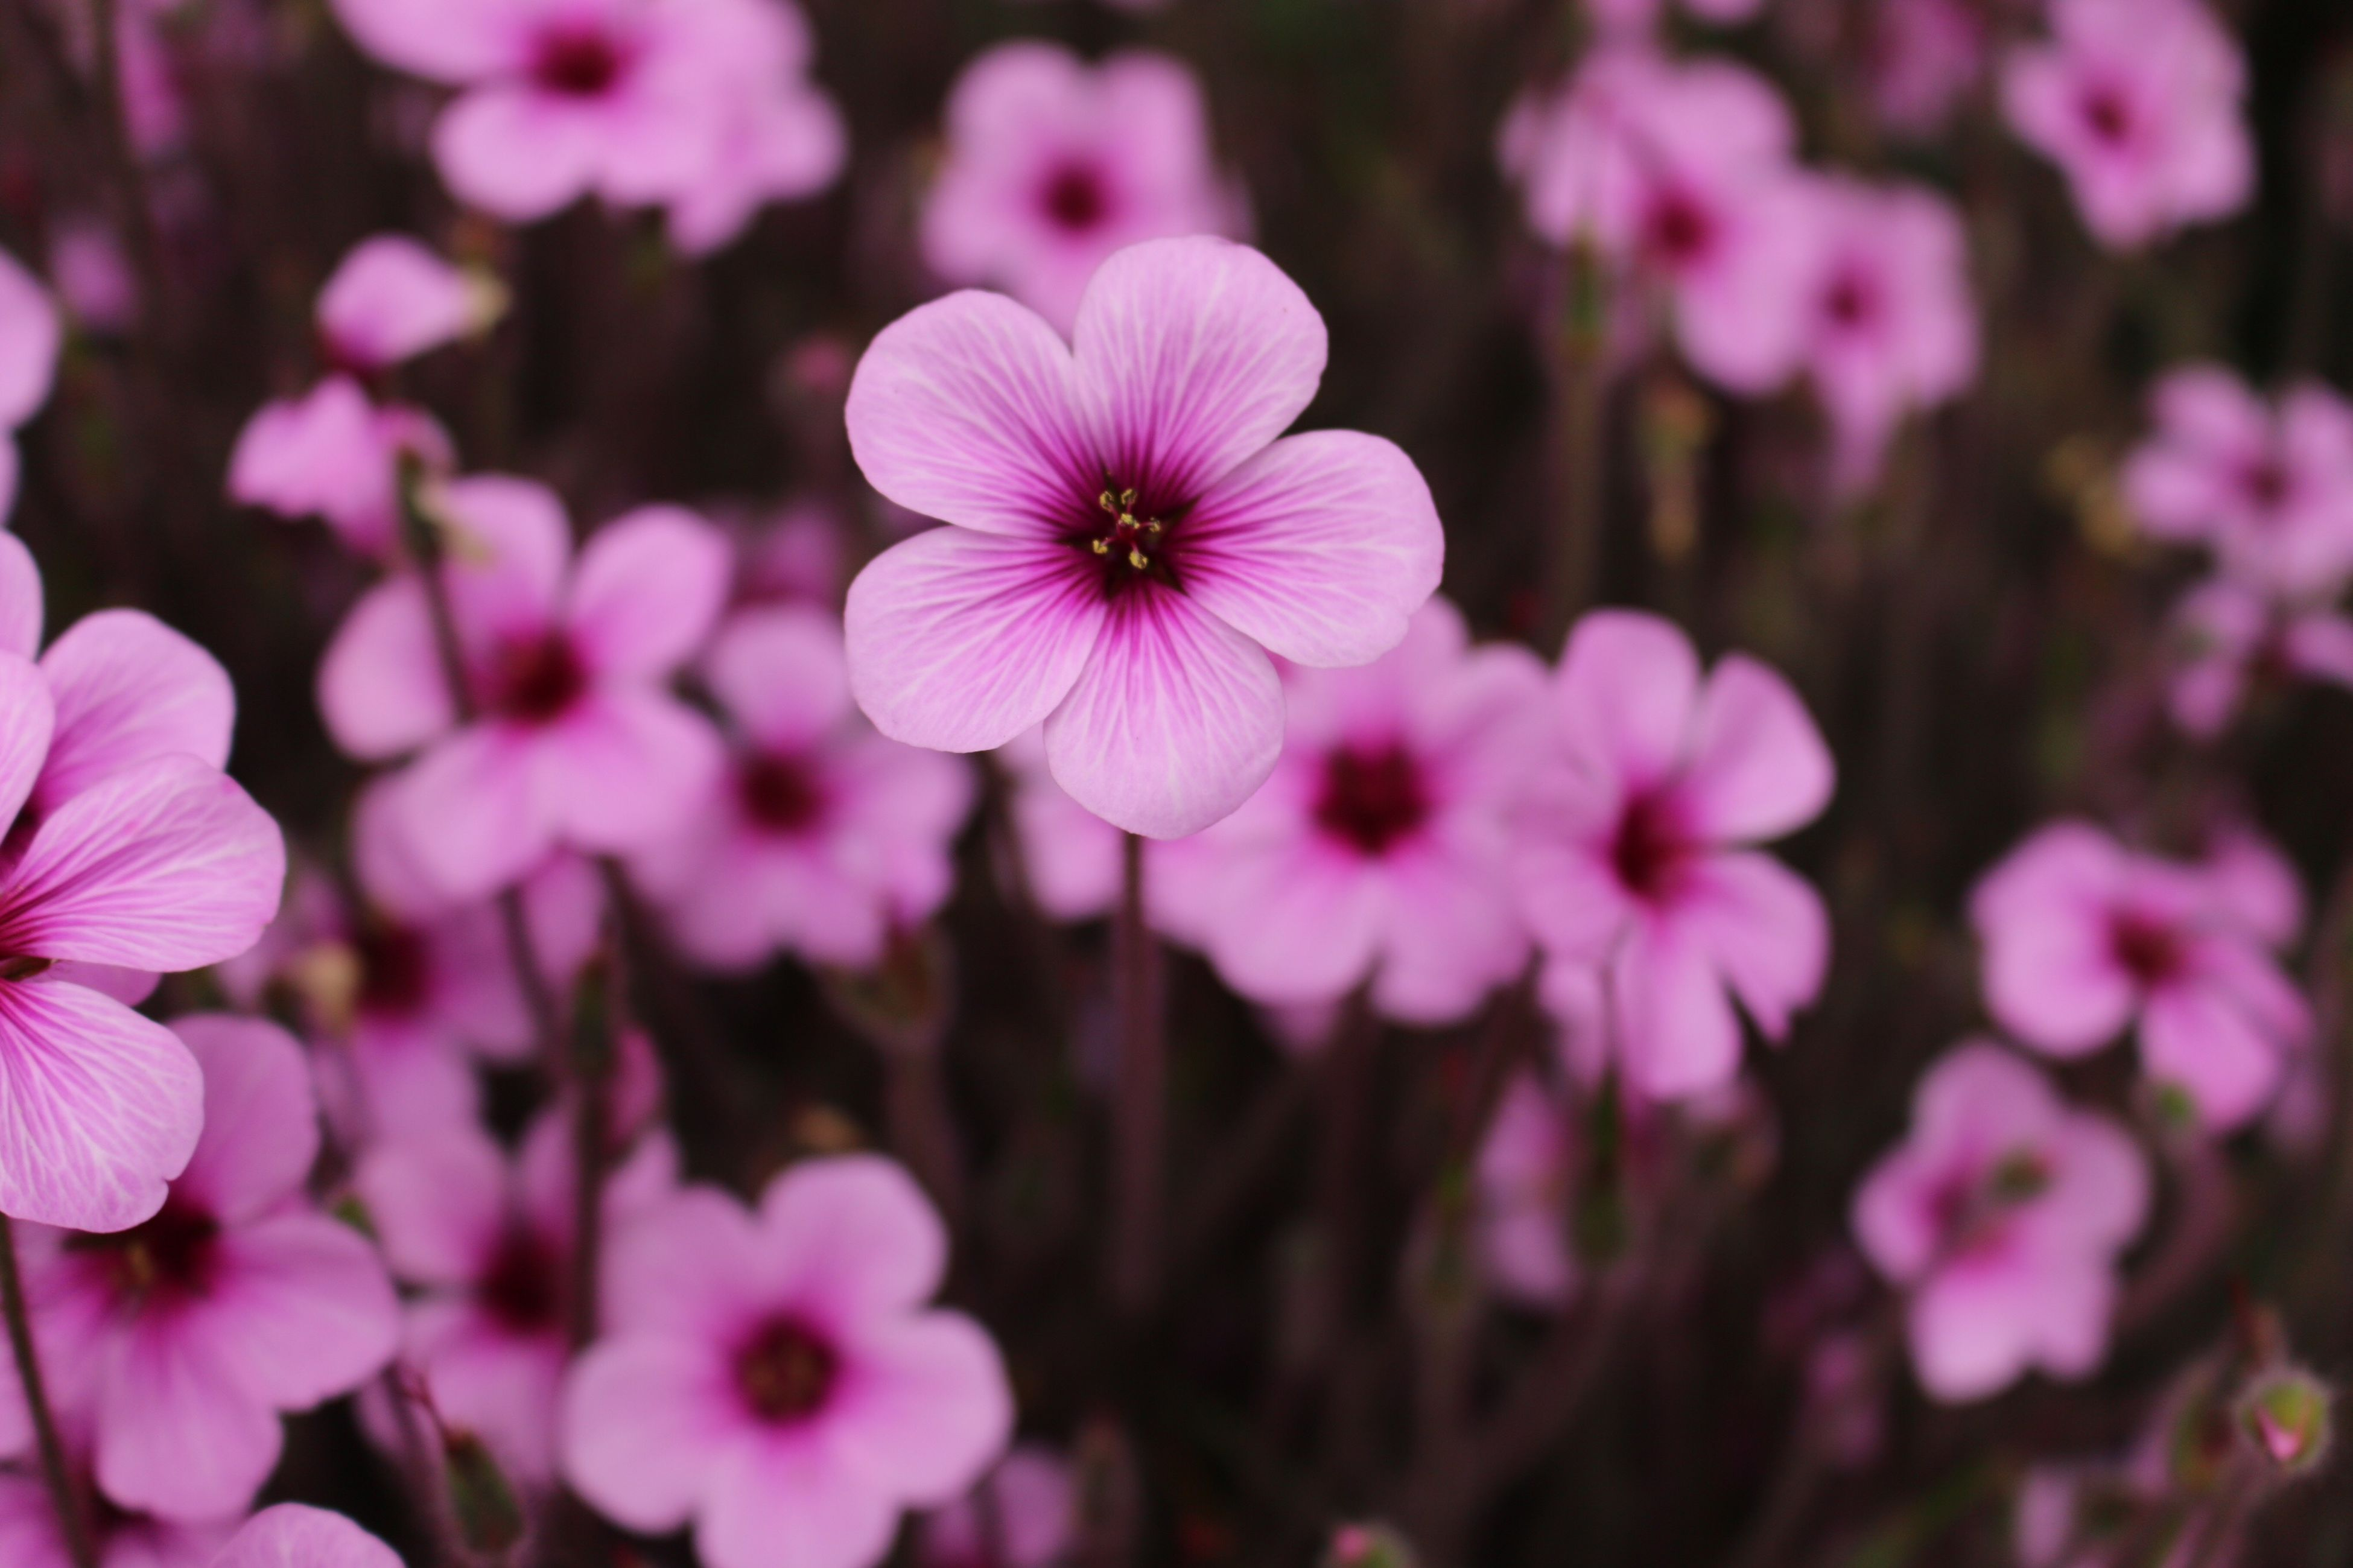 flower, freshness, petal, fragility, growth, pink color, flower head, beauty in nature, blooming, focus on foreground, nature, close-up, in bloom, plant, blossom, pink, selective focus, day, outdoors, park - man made space